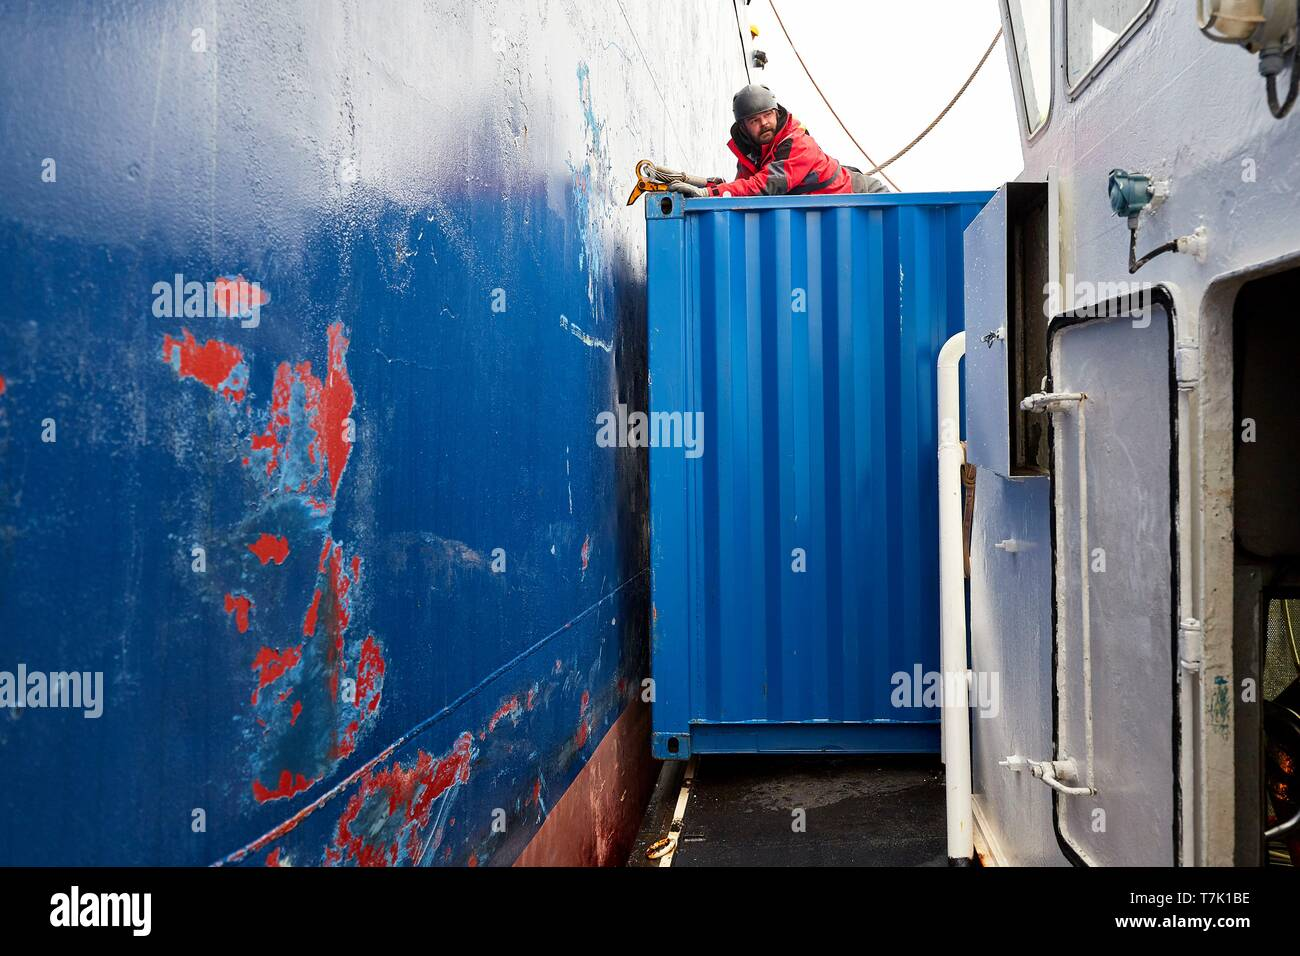 France, French Southern and Antarctic Territories (TAAF), Kerguelen Islands, Port-aux-Français, on board the barge Aventure II, the only boat of the island, which transports the heavy freight (container) between the Marion Dufresne and the pier of Port-aux-Français. A seaman sitting on a container during the approach of the Marion Dufresne - Stock Image